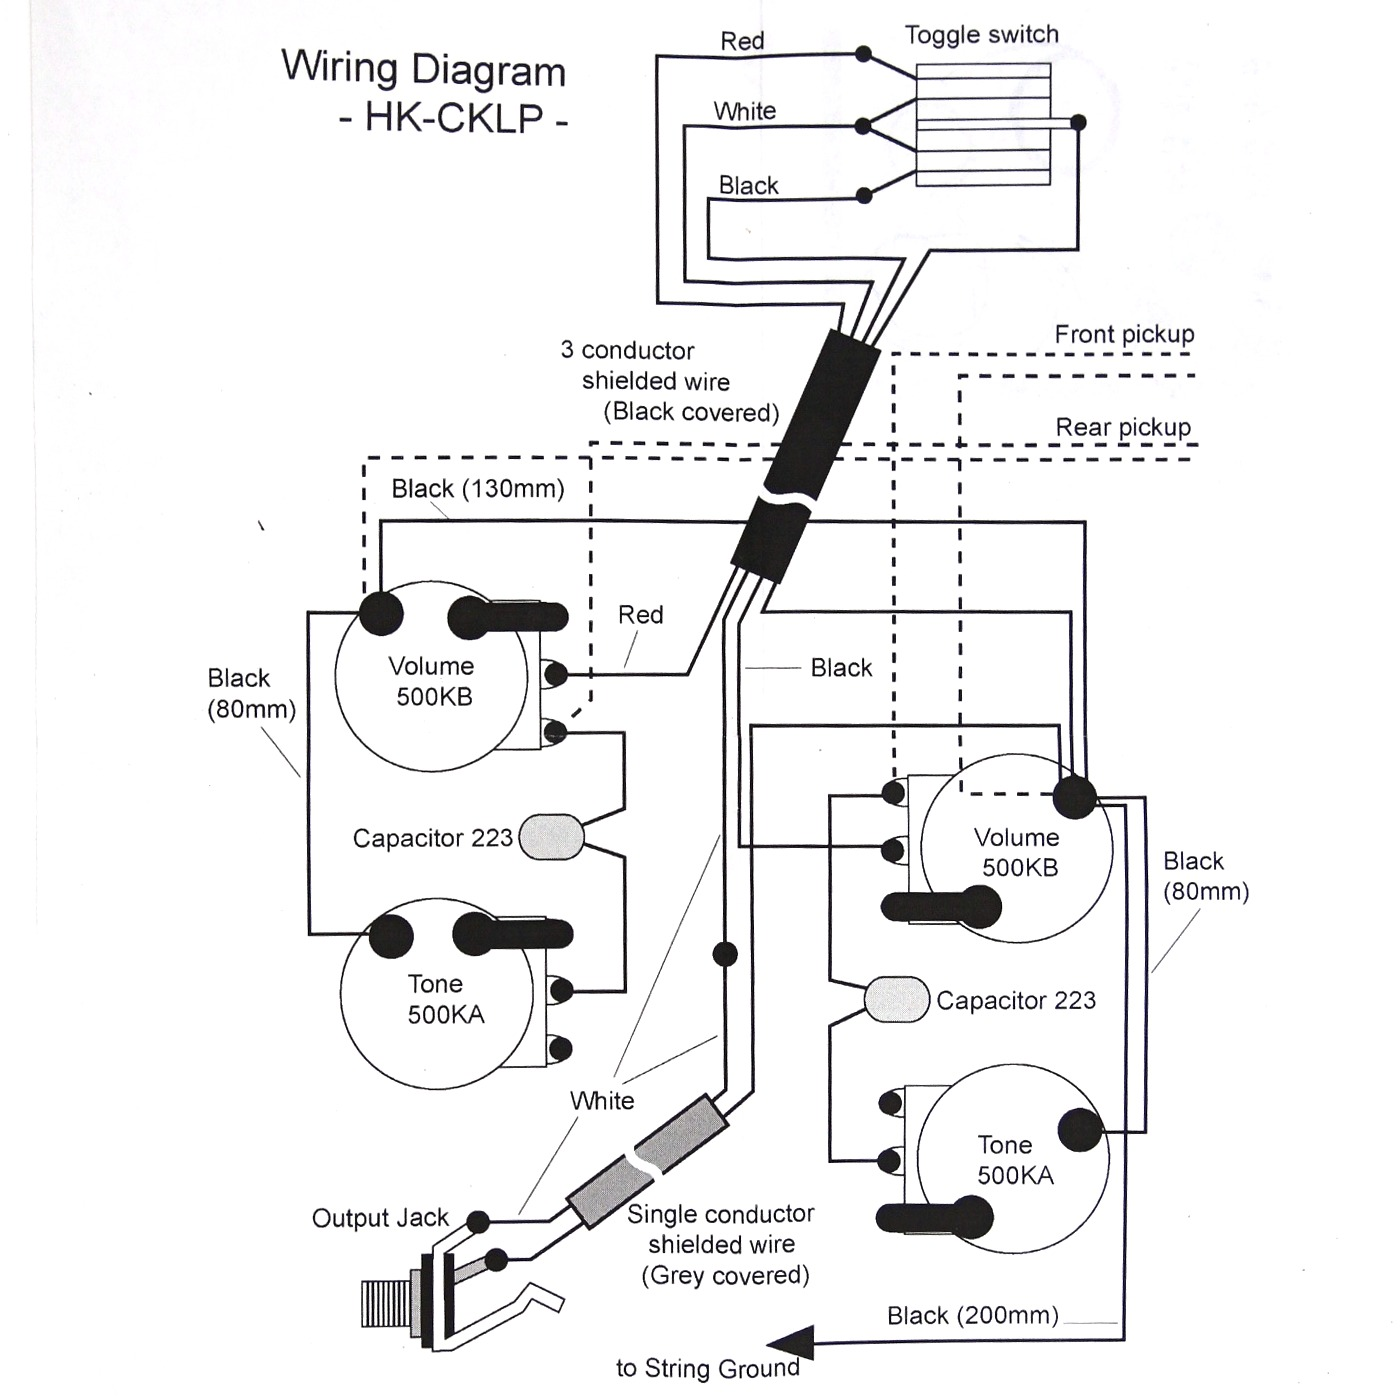 Wiring Kit for LP type Guitars, with diagram, Black